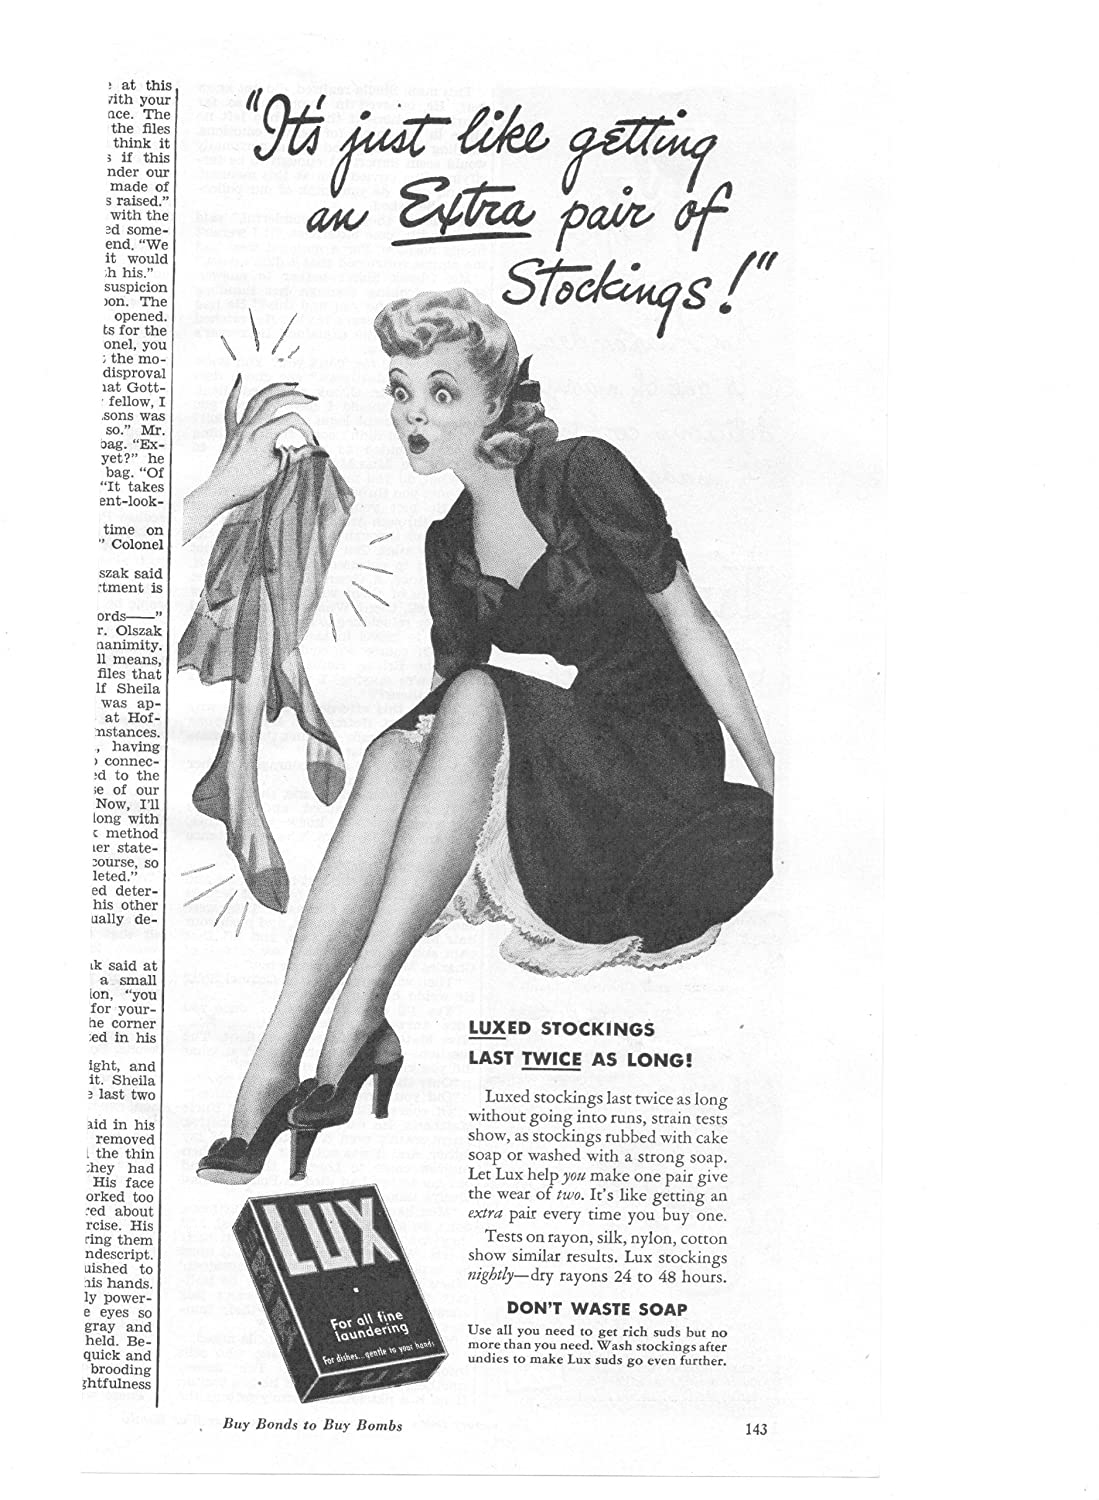 Lifebouy Soap Vintage advertising poster reproduction.